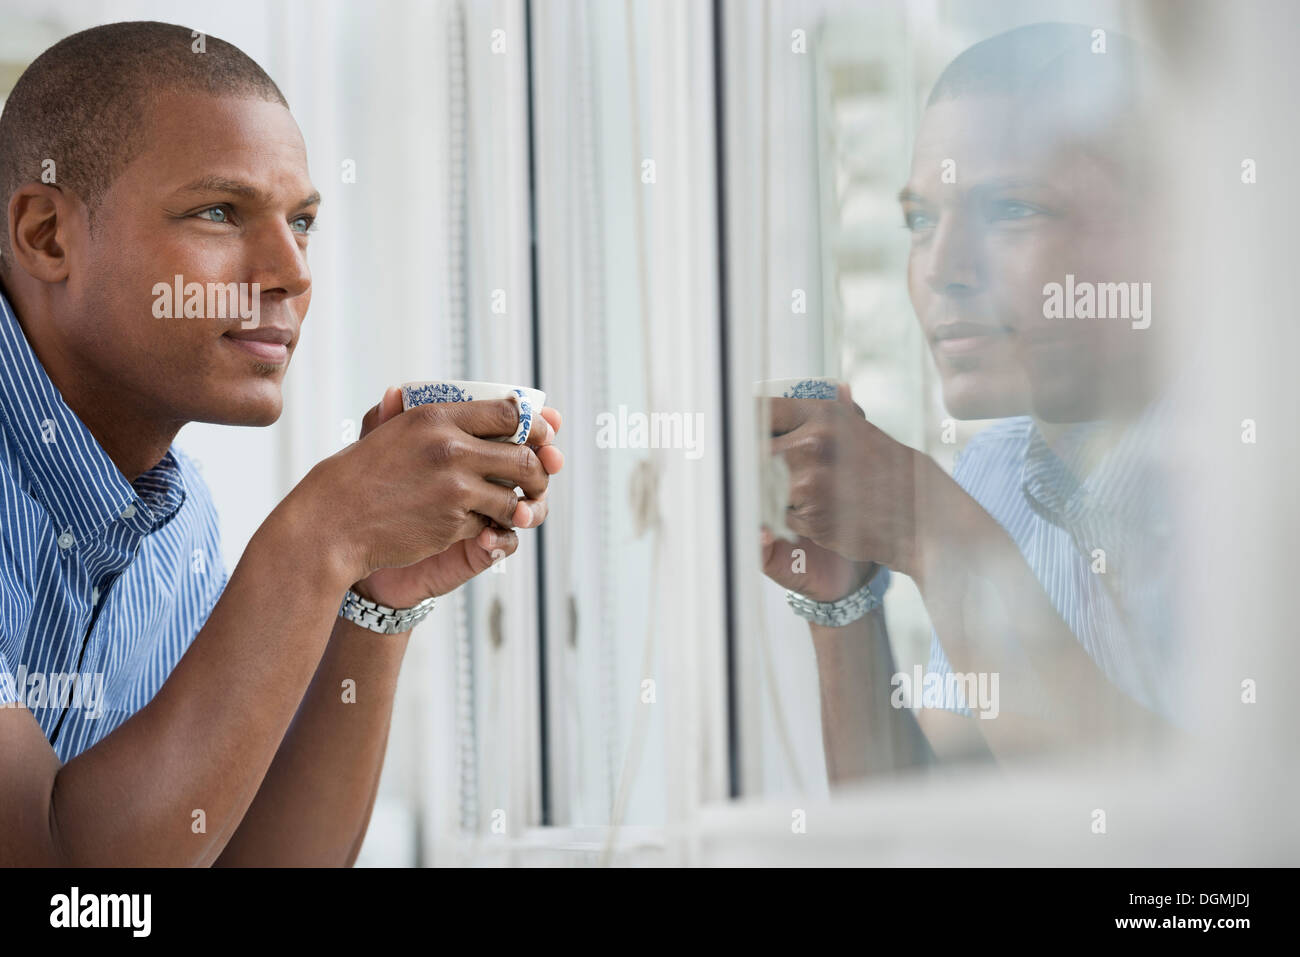 Office. A young man leaning on the windowsill holding a cup of tea. - Stock Image